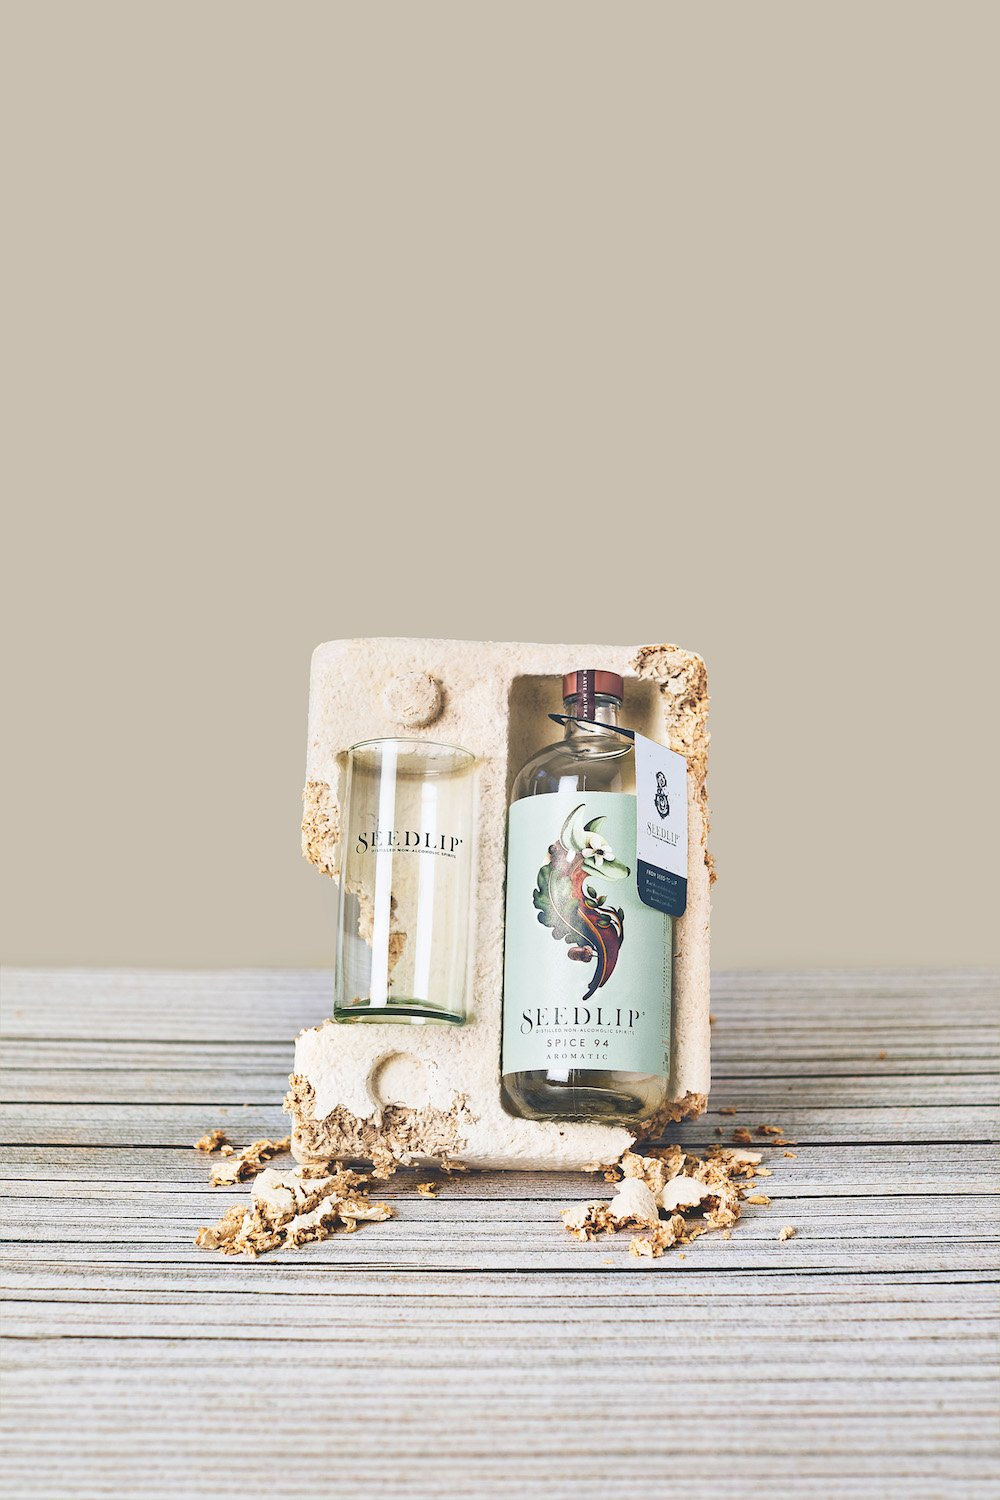 Seedlip's fully sustainable gift packaging uses composed of biomass and mycelium